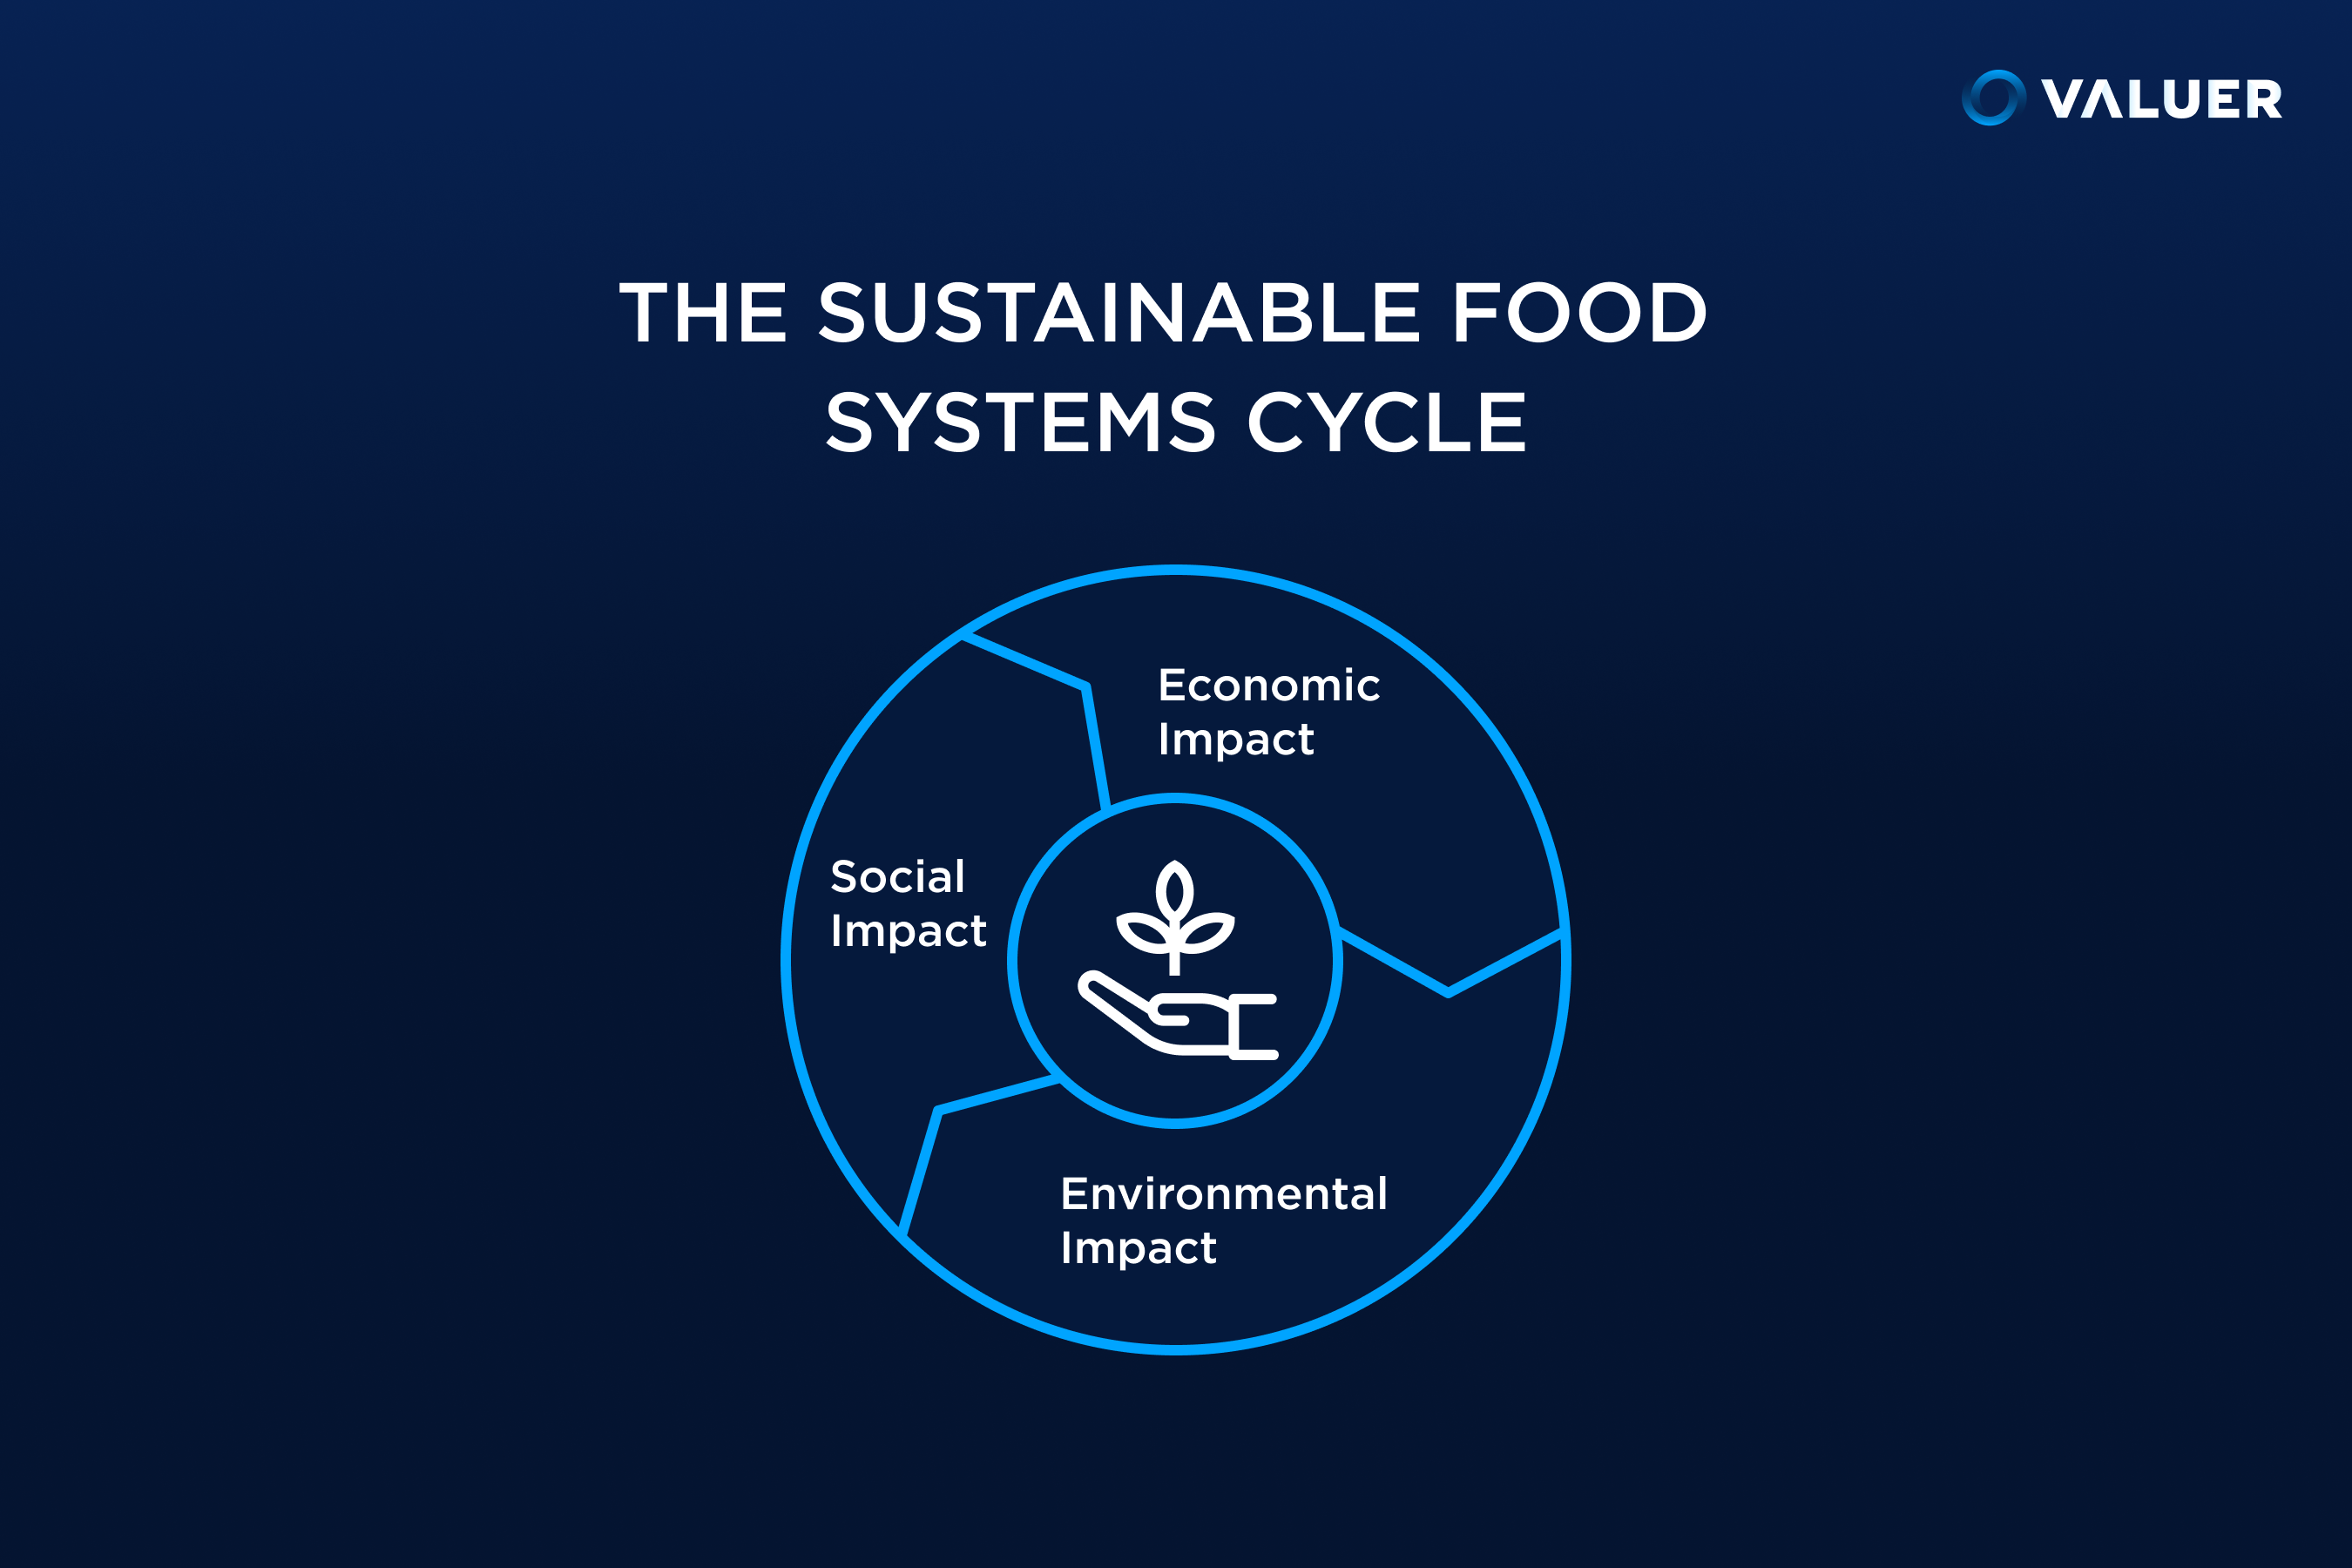 sustainable food systems cycle with 3 impact areas in the pie chart infographic